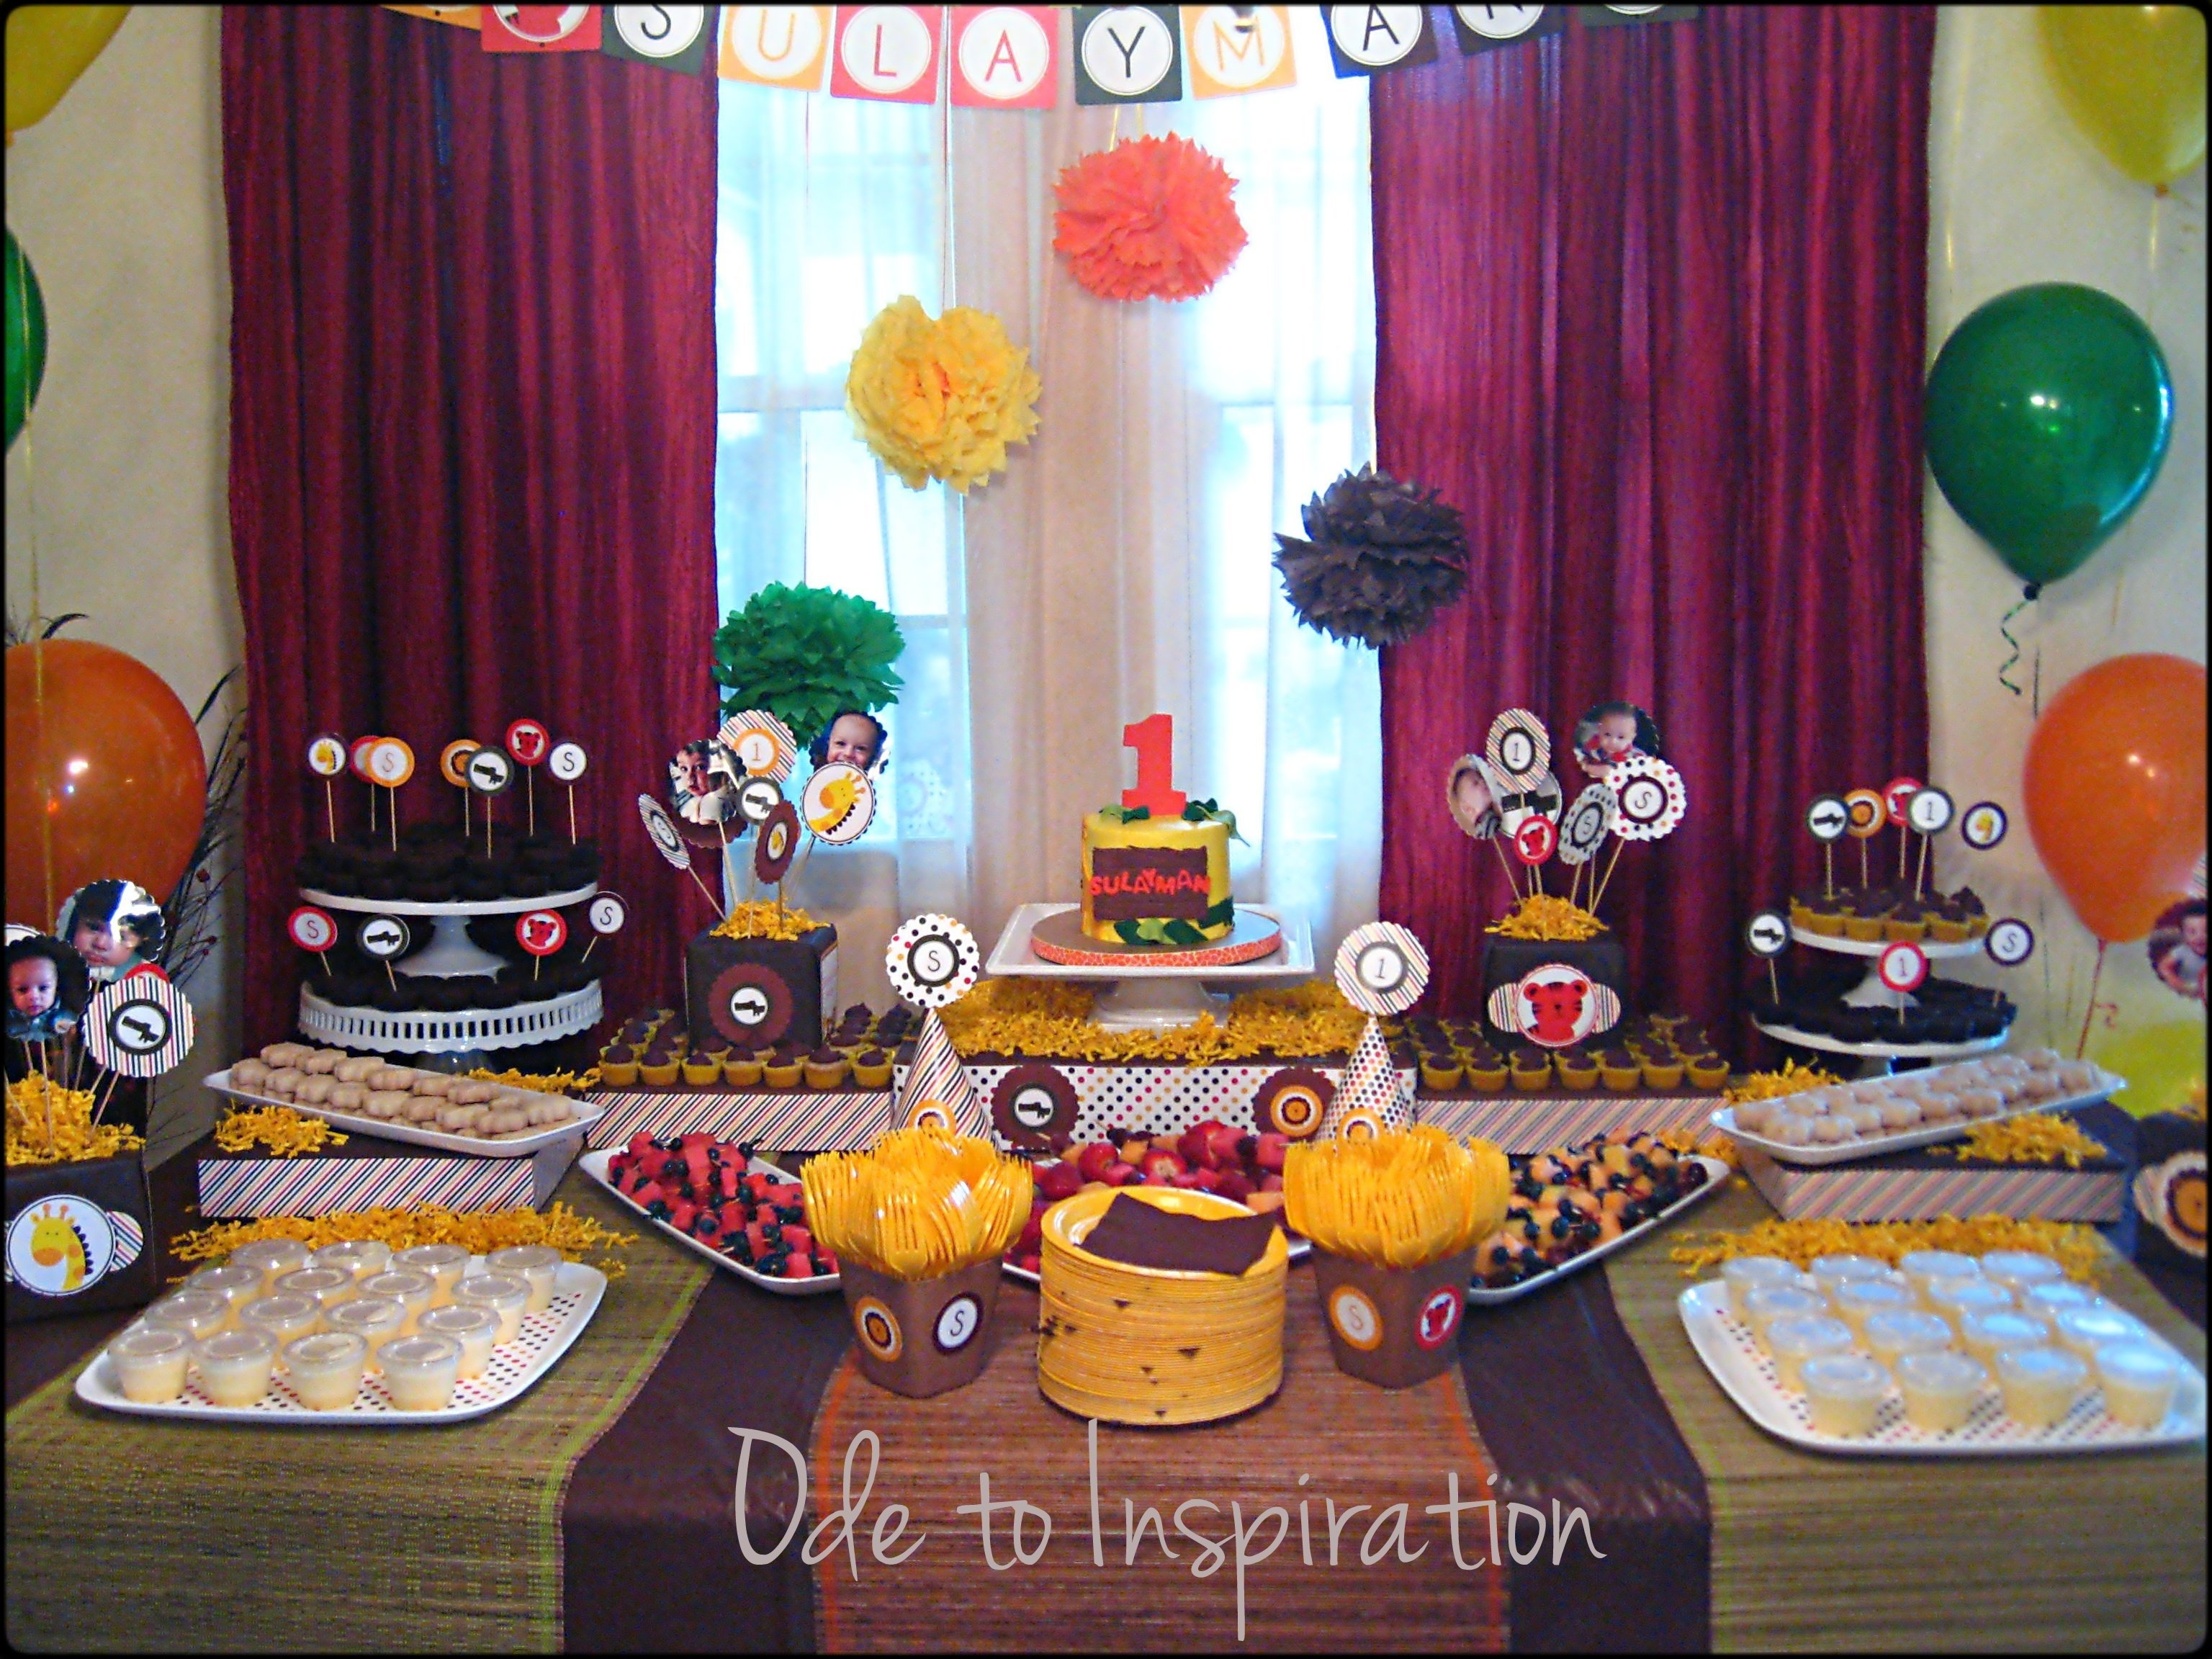 10 Fabulous Party Ideas For Adults At Home birthday house party ideas for adults